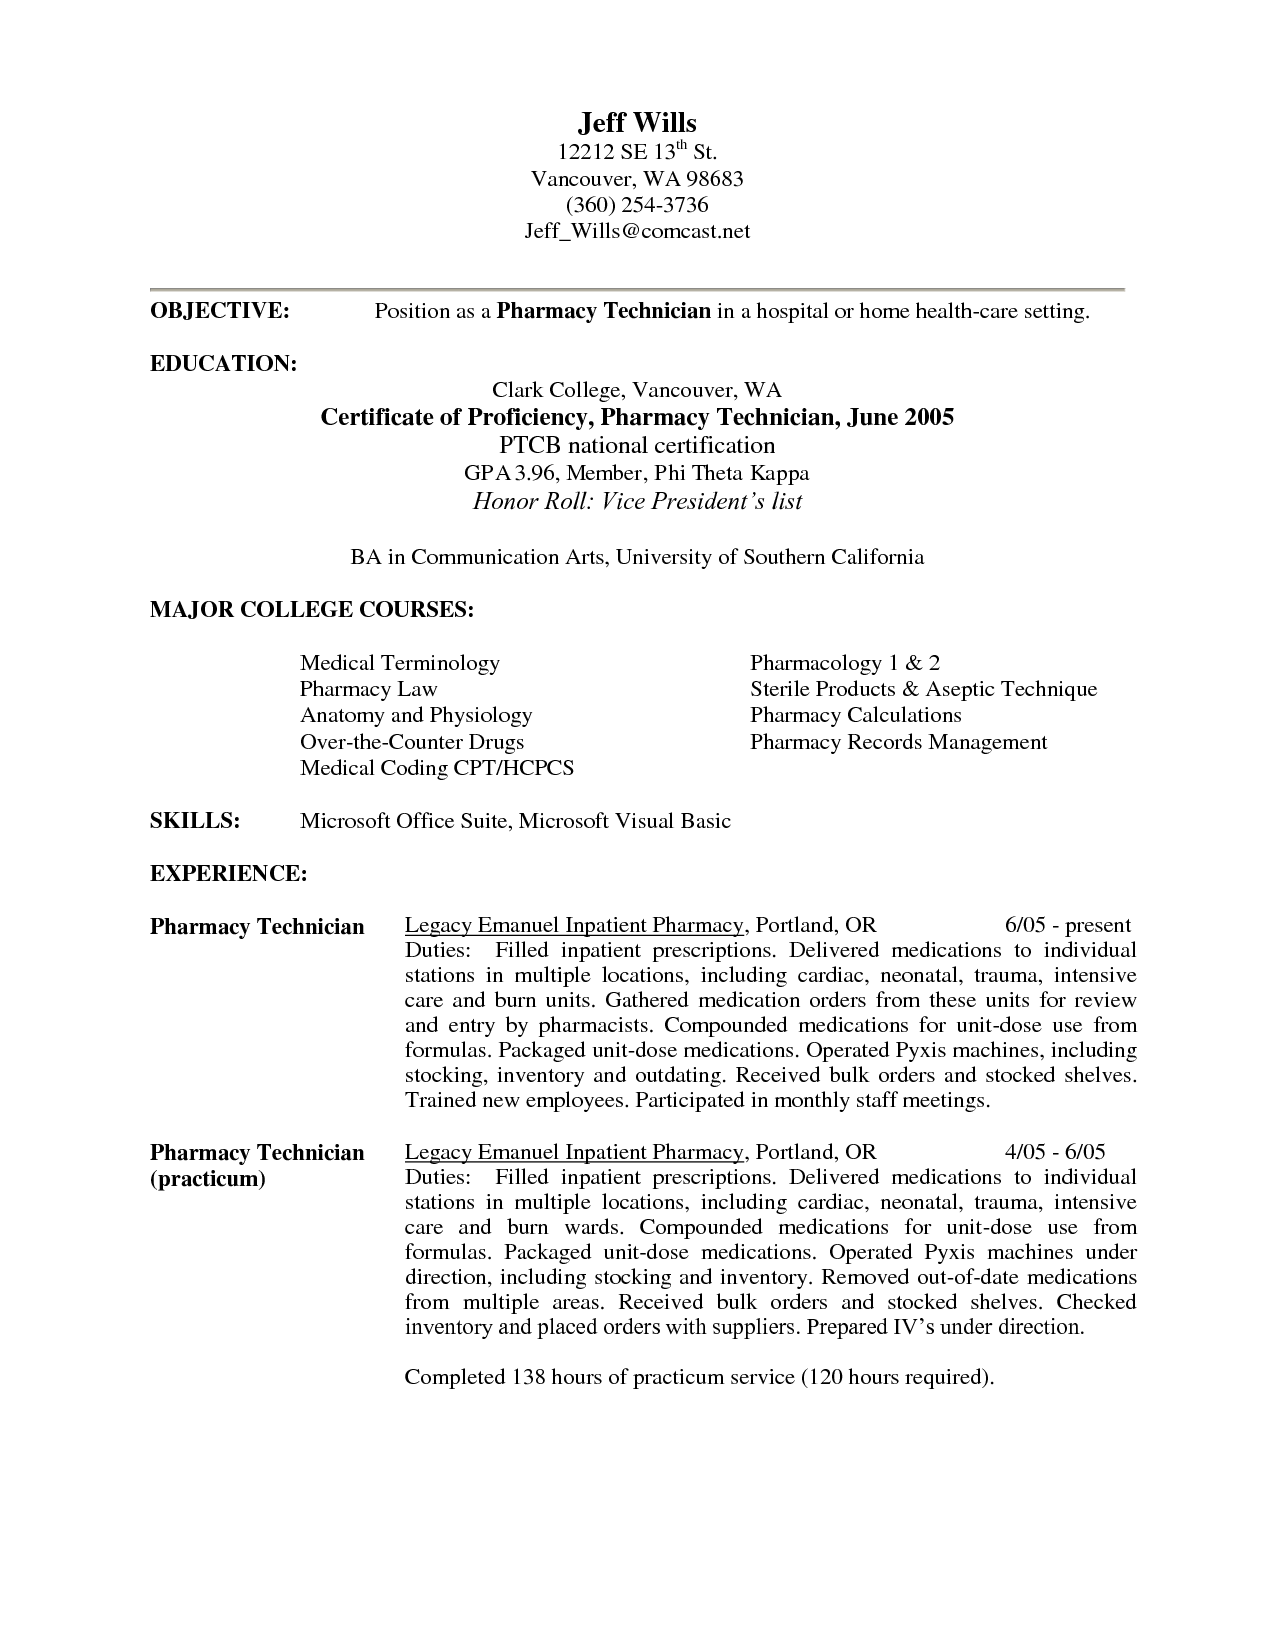 Charming Pharmacy Technician Objective Resume Samples Ideas Sample Pharmacy Technician Resume